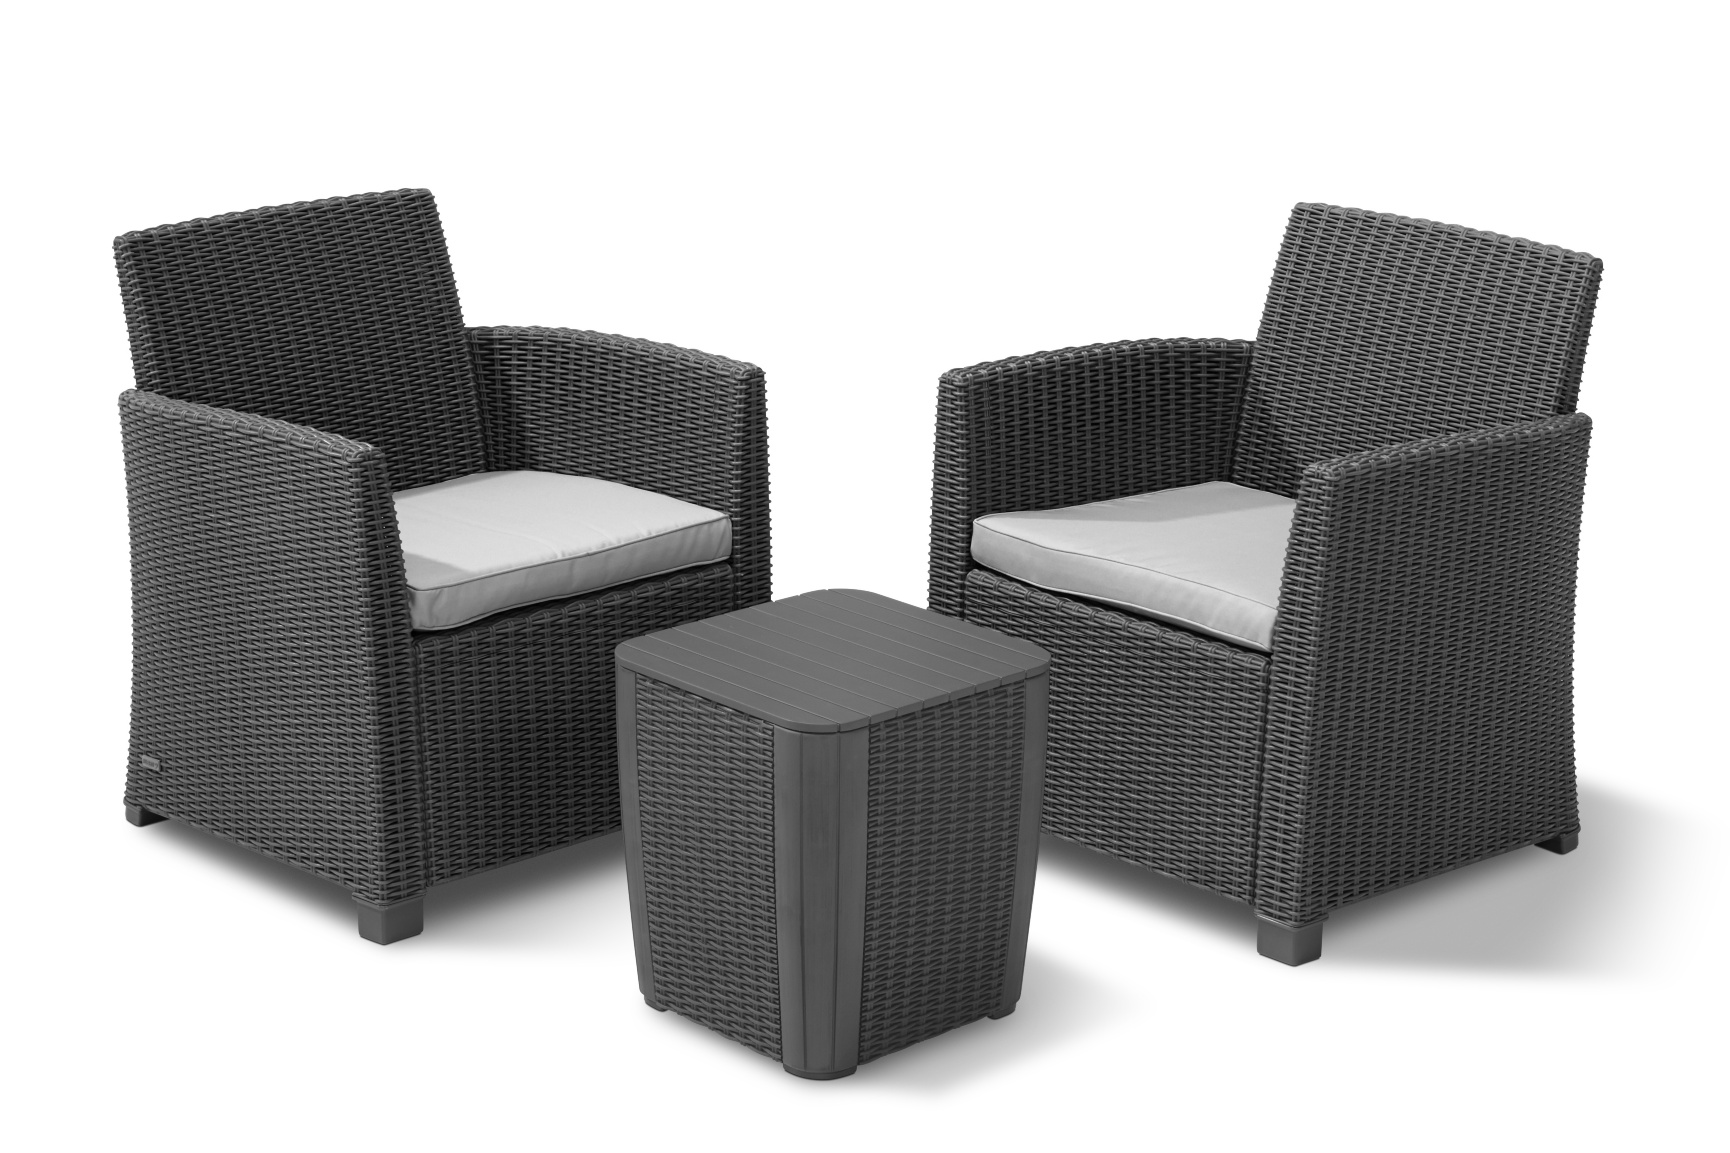 allibert corona duo set graphite allibert. Black Bedroom Furniture Sets. Home Design Ideas